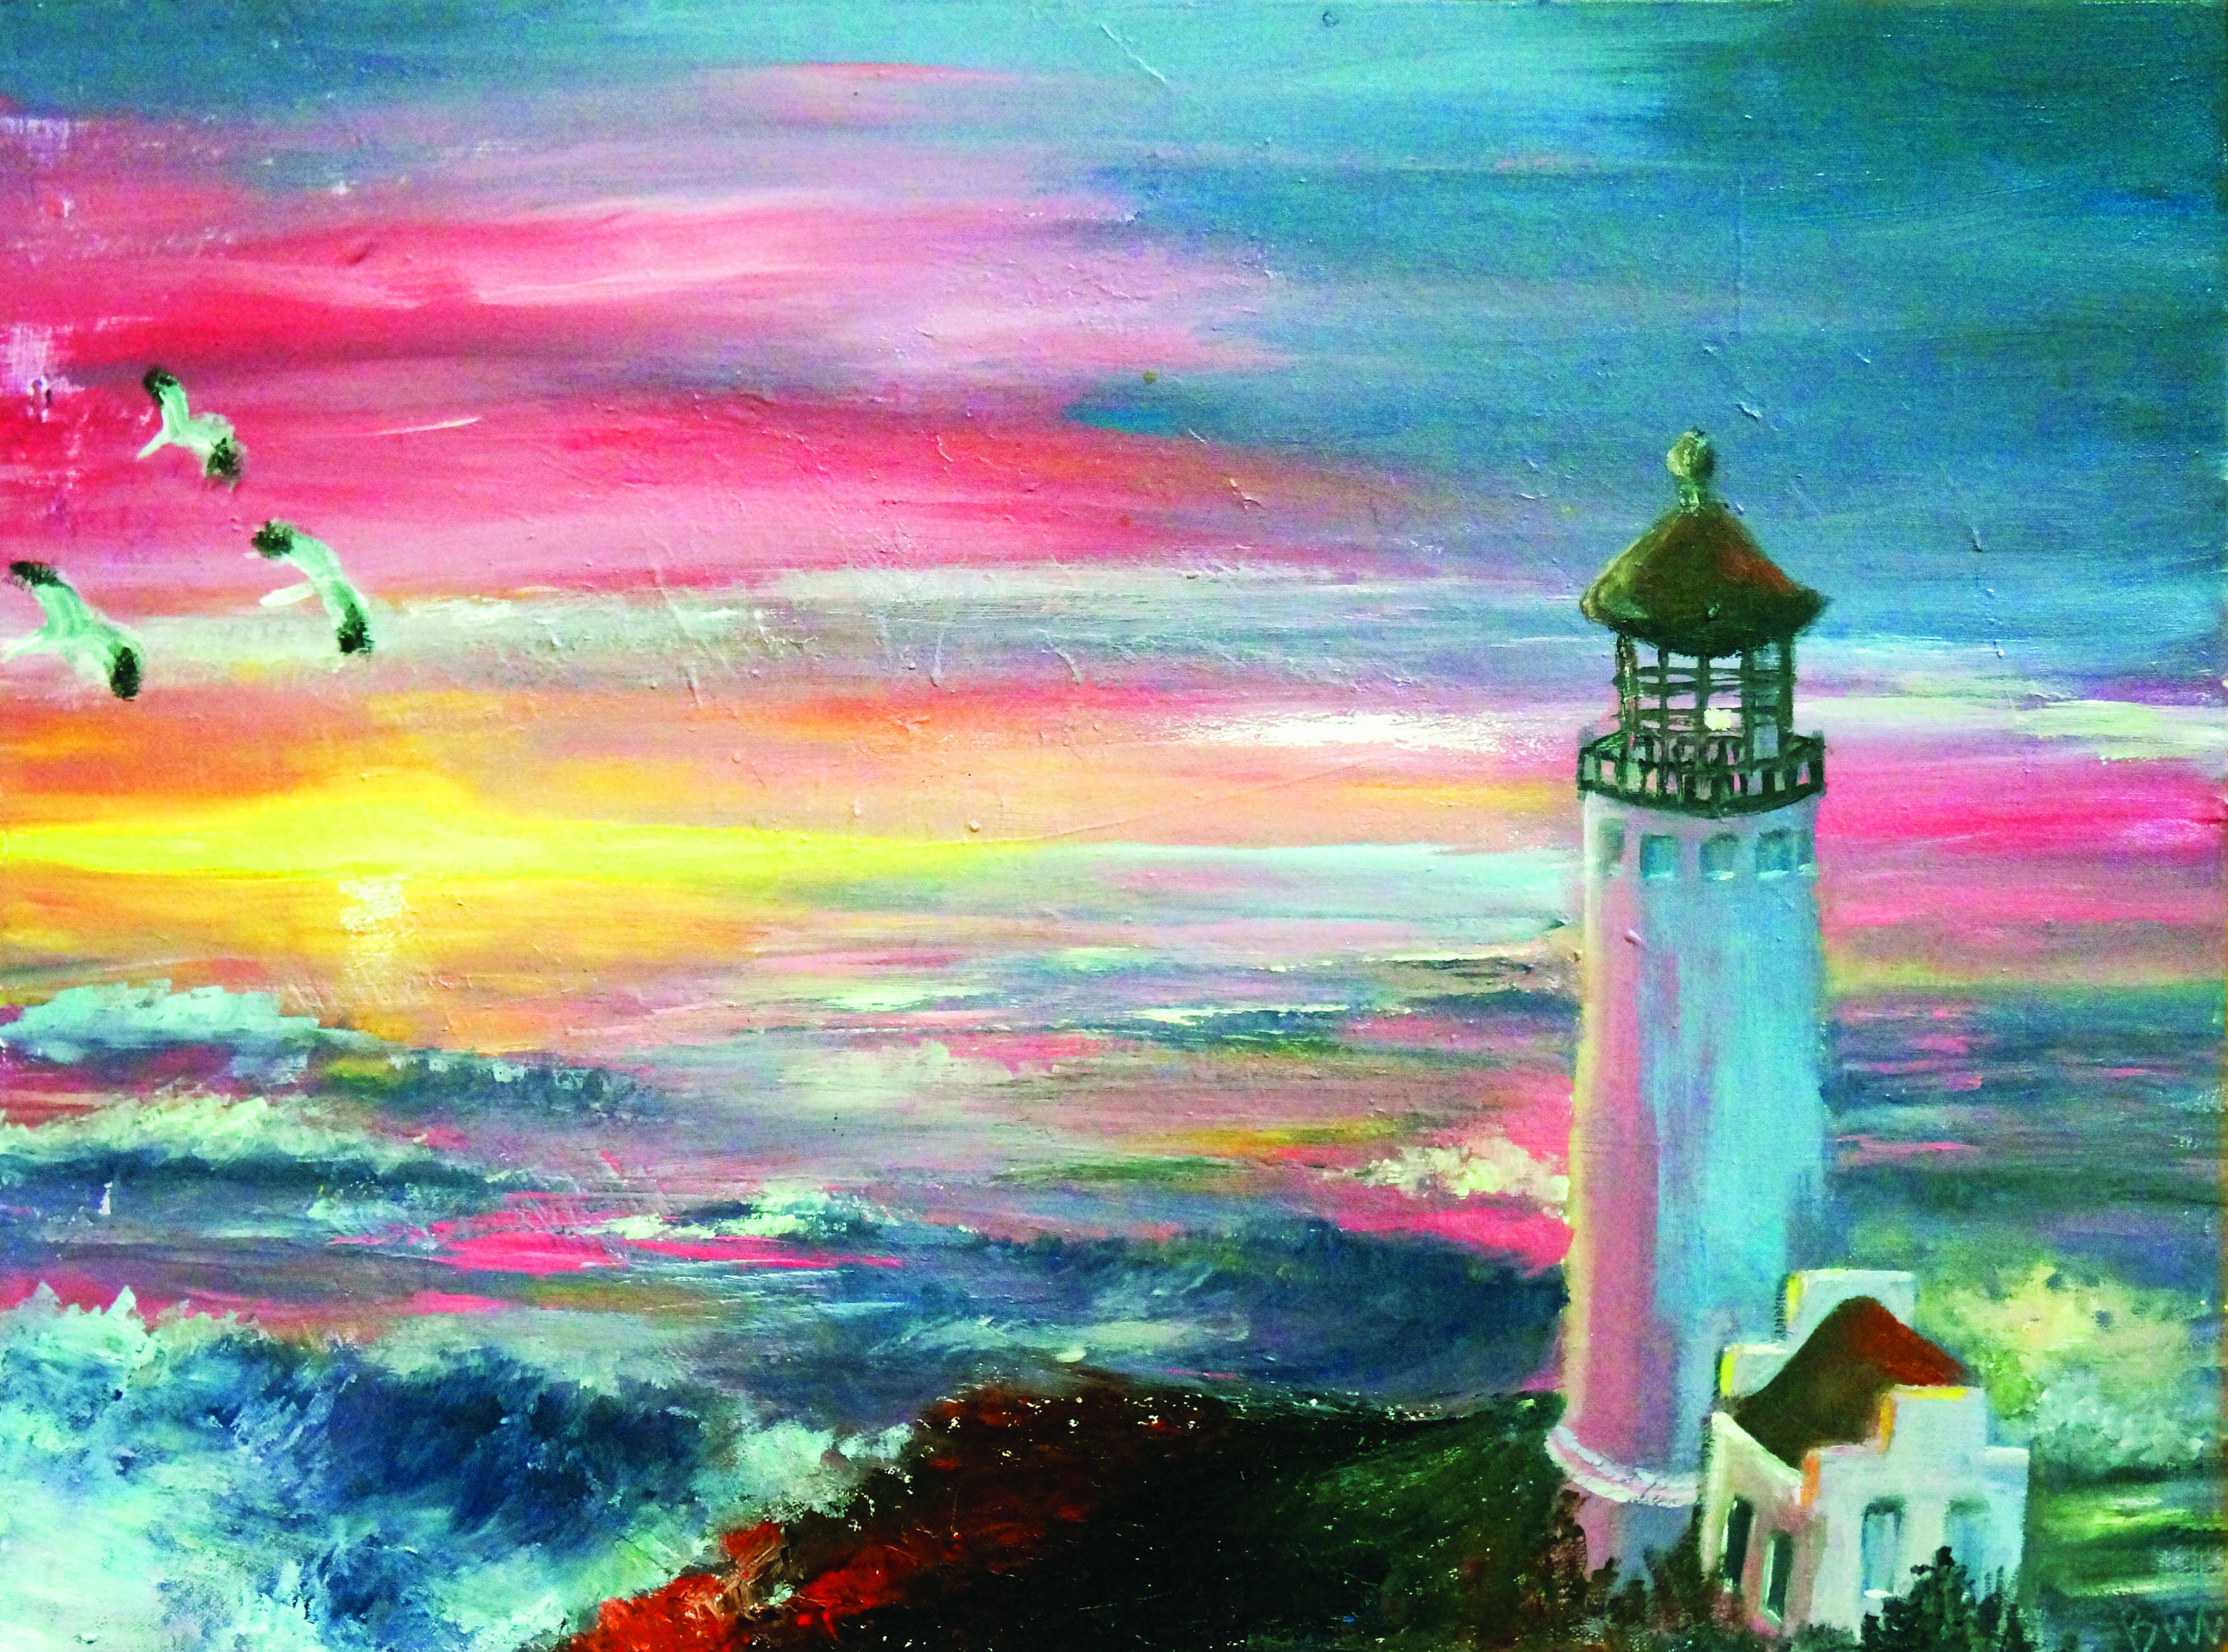 artist, exhibition, oil painting, landscape painting, lighthouse painting, landscape exhibition